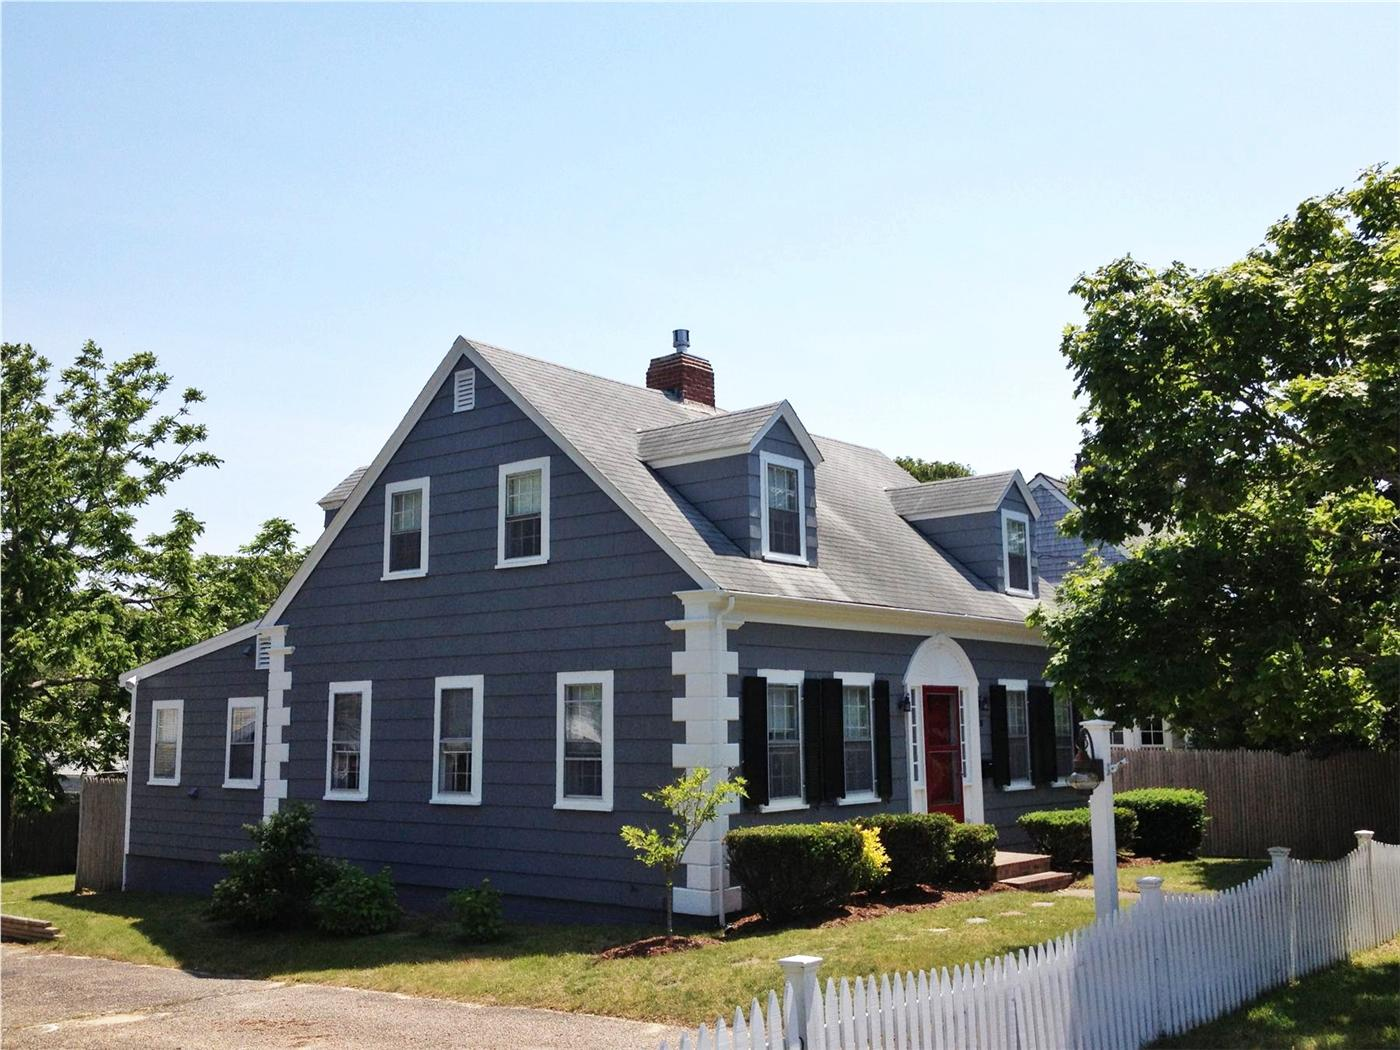 Yarmouth Vacation Rental Home In Cape Cod Ma 02673 3 10